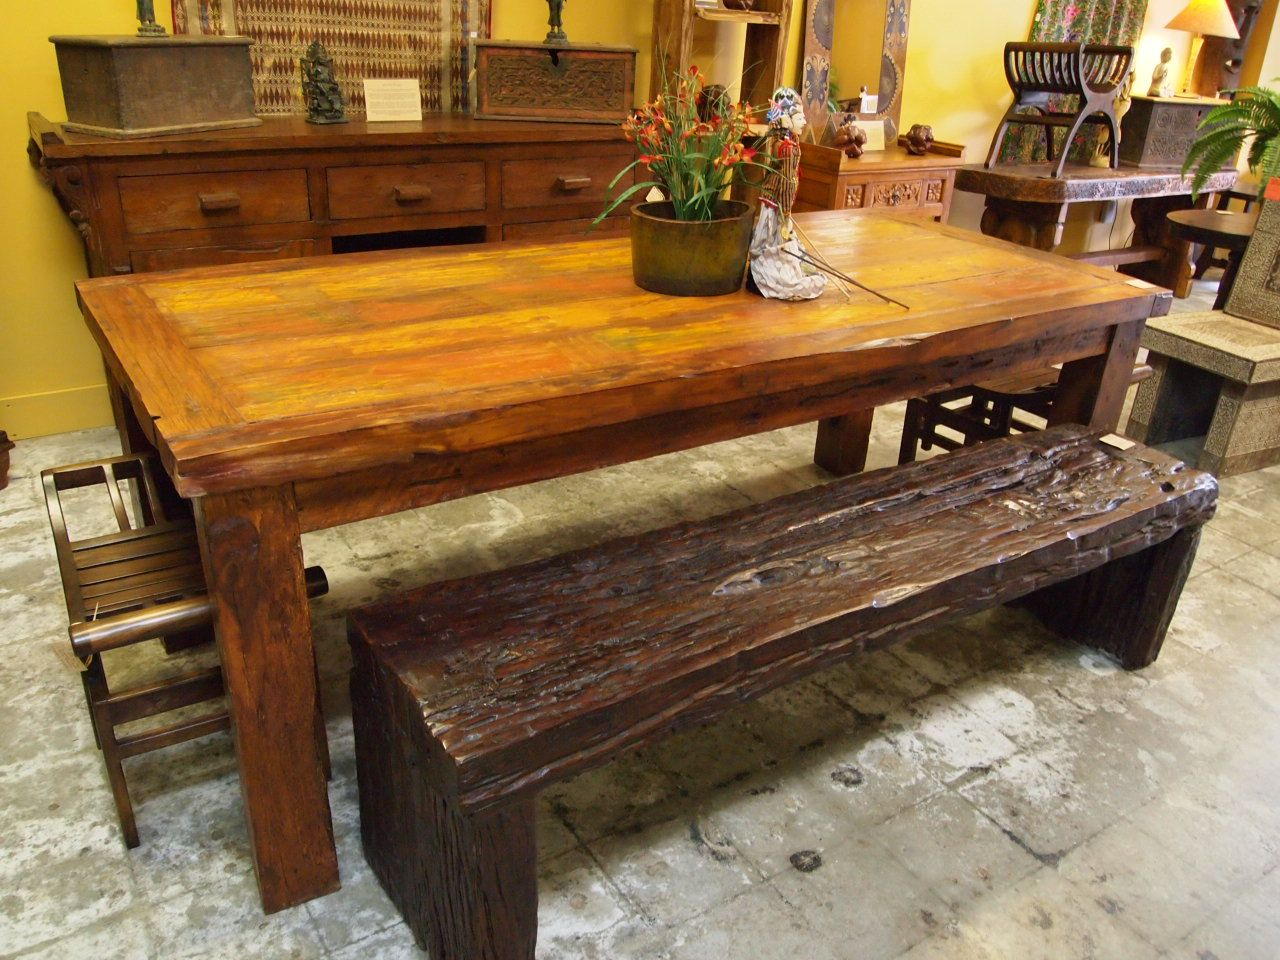 Reclaimed Wood Dining Table Rustic Ironwood Bench Visit Gado